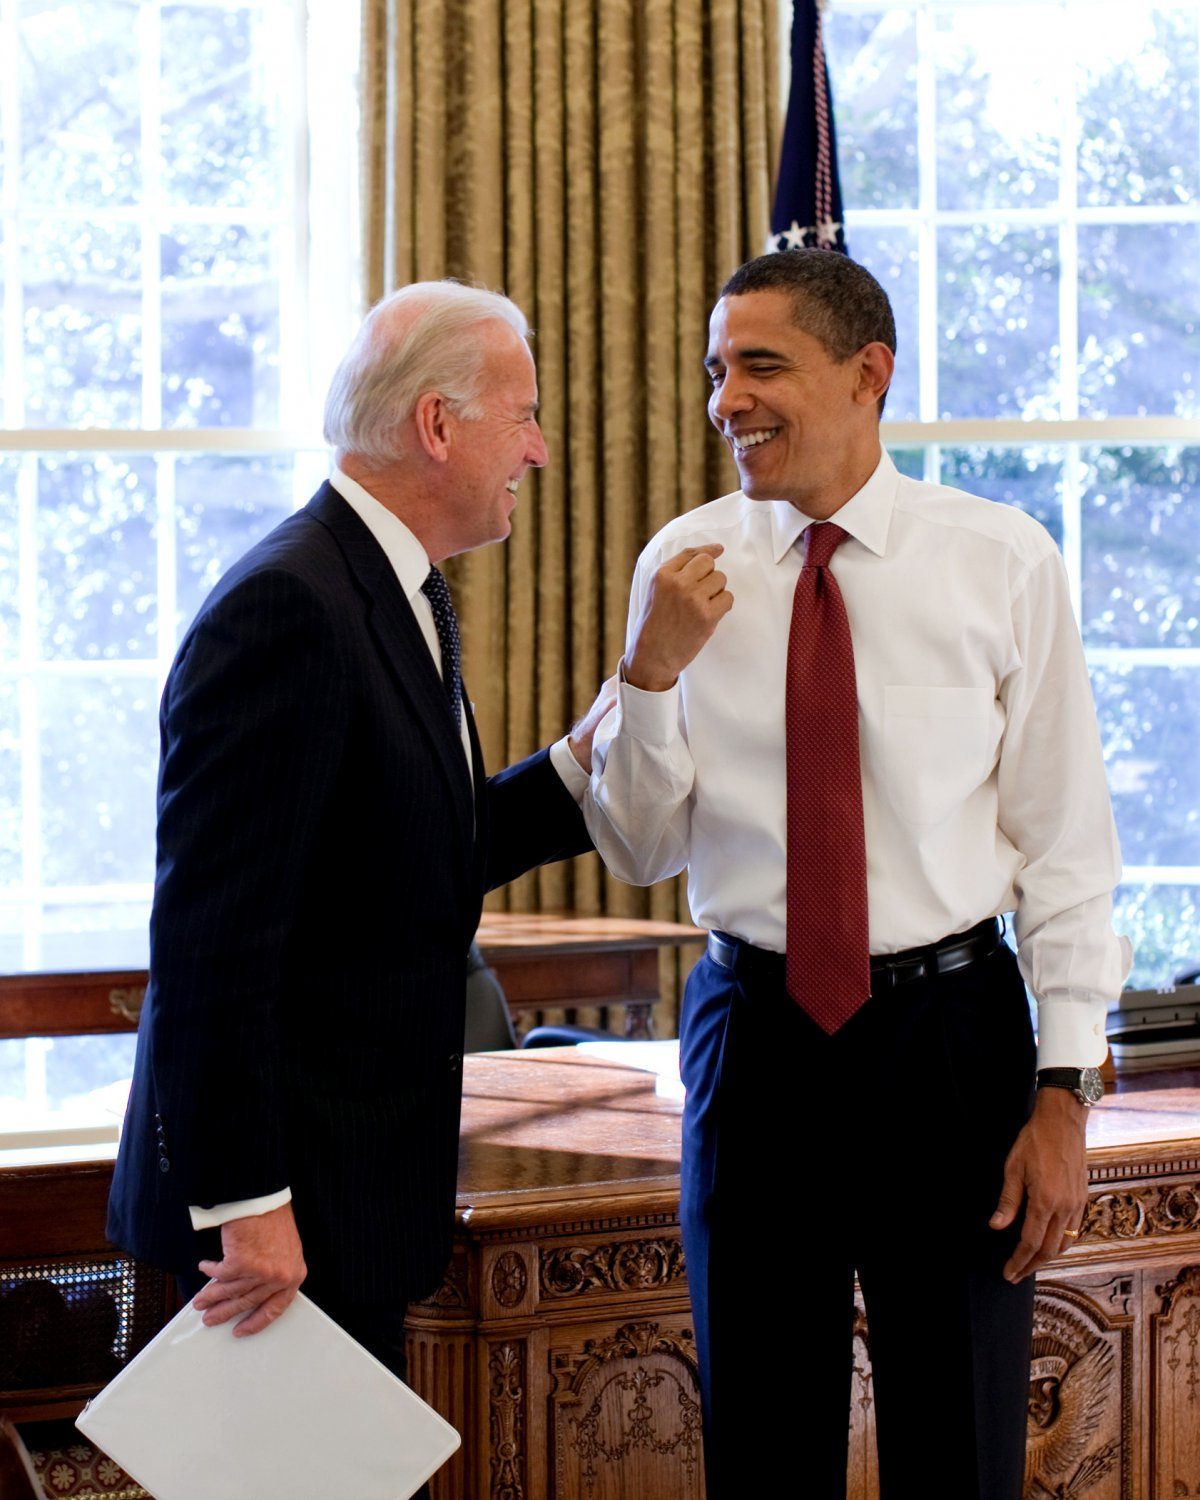 BARACK OBAMA & JOE BIDEN SHARE A LAUGH IN THE OVAL OFFICE - 8X10 PHOTO (CC-111)